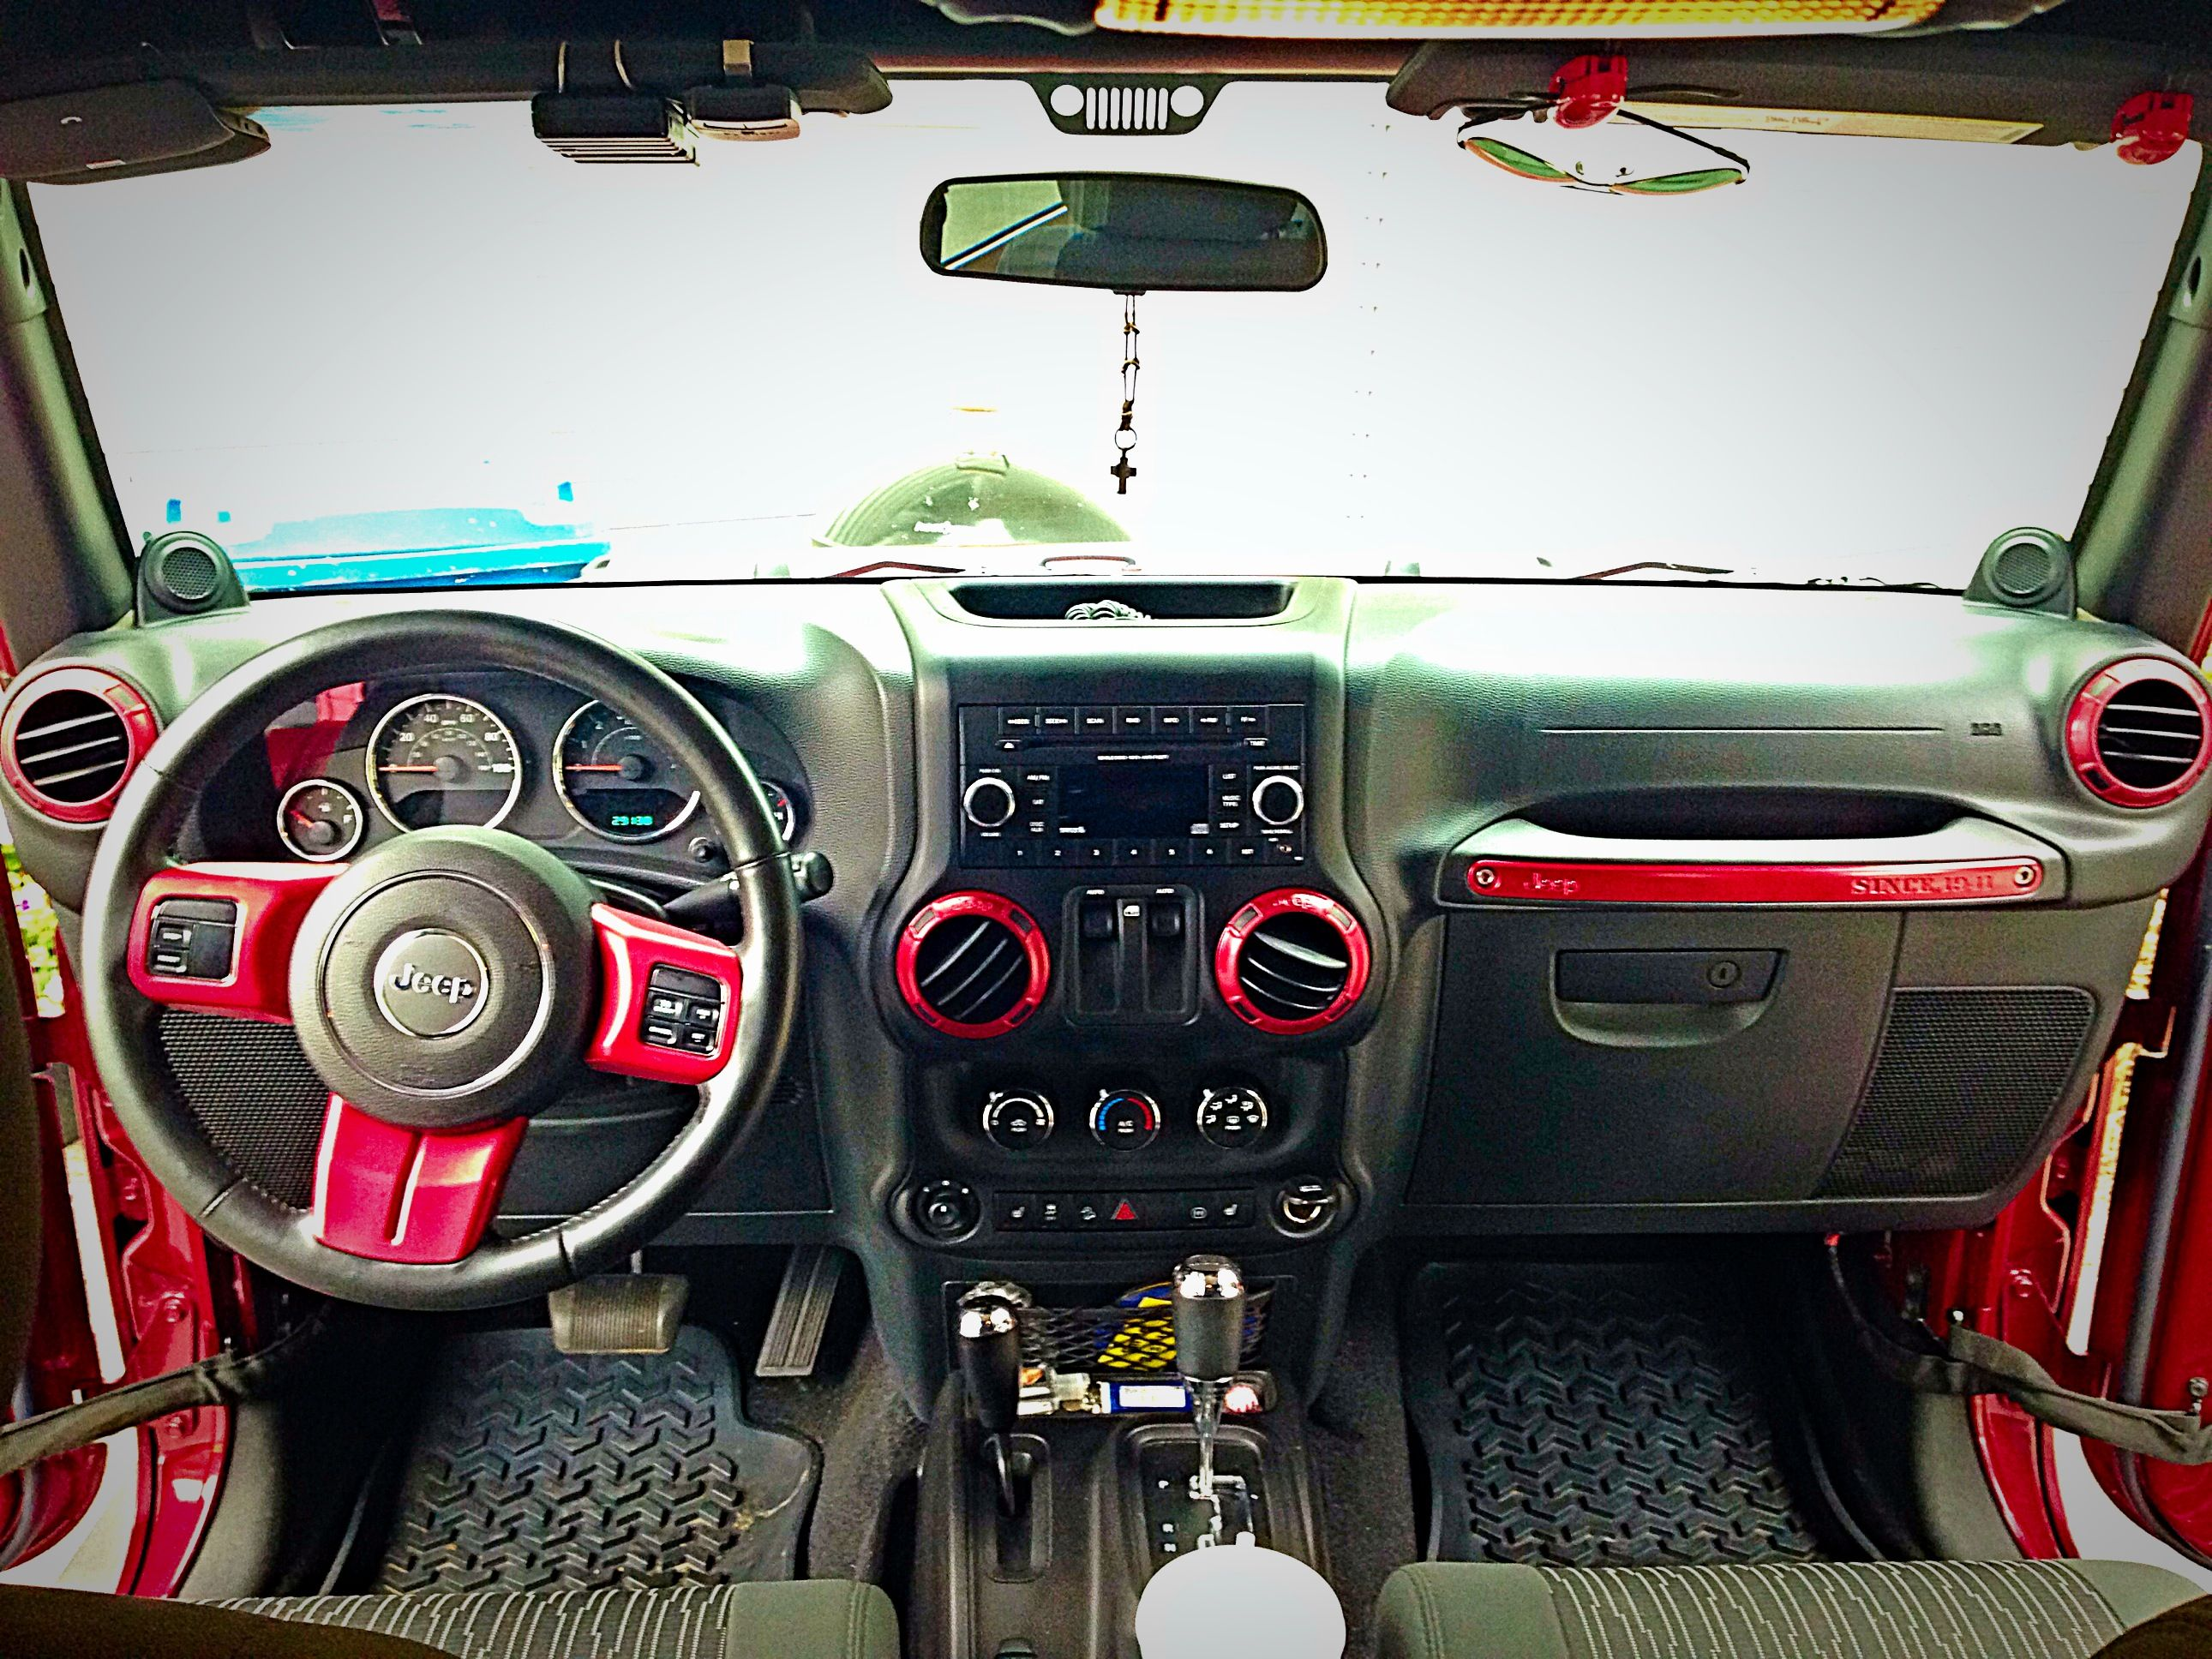 Diy Red Accents For Jeep Wrangler Find Your Mopar Paint At Quadratec Com And Rugged Ridge Steering Wheel Trim At Jeep Wrangler Diy Red Jeep Red Jeep Wrangler